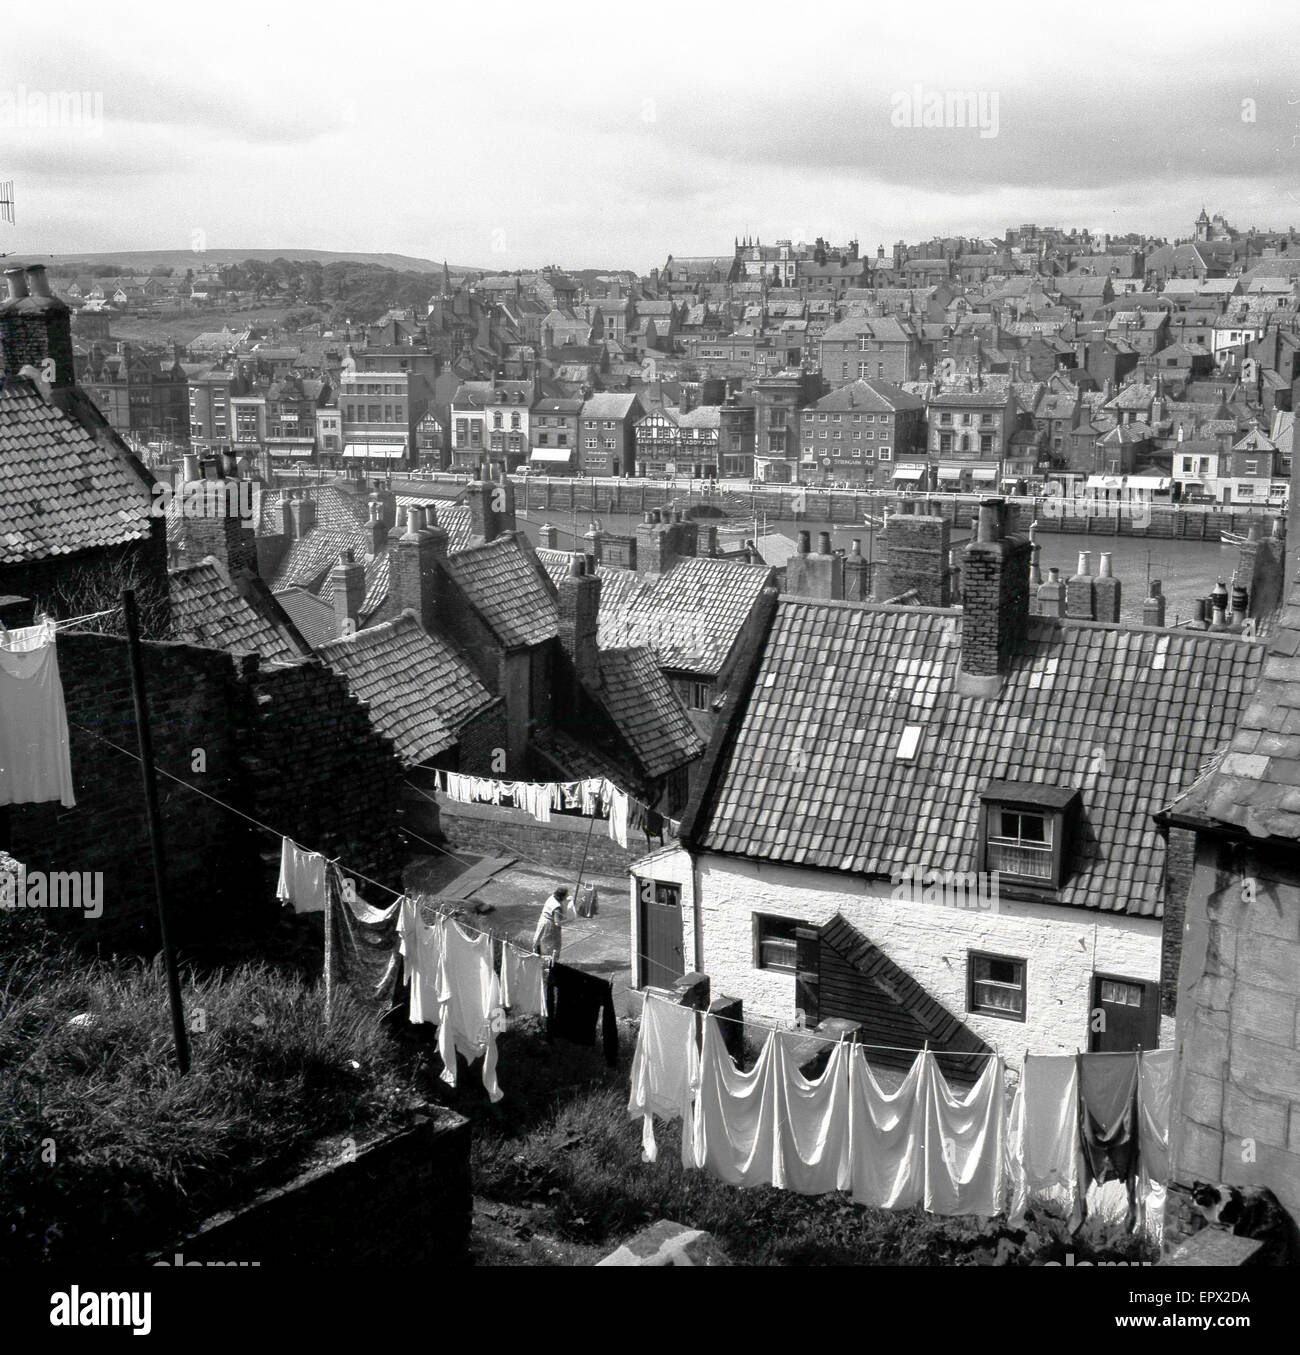 1950s, historical, England, view over victorian terraced housing and town with washing hanging on a clothesline - Stock Image